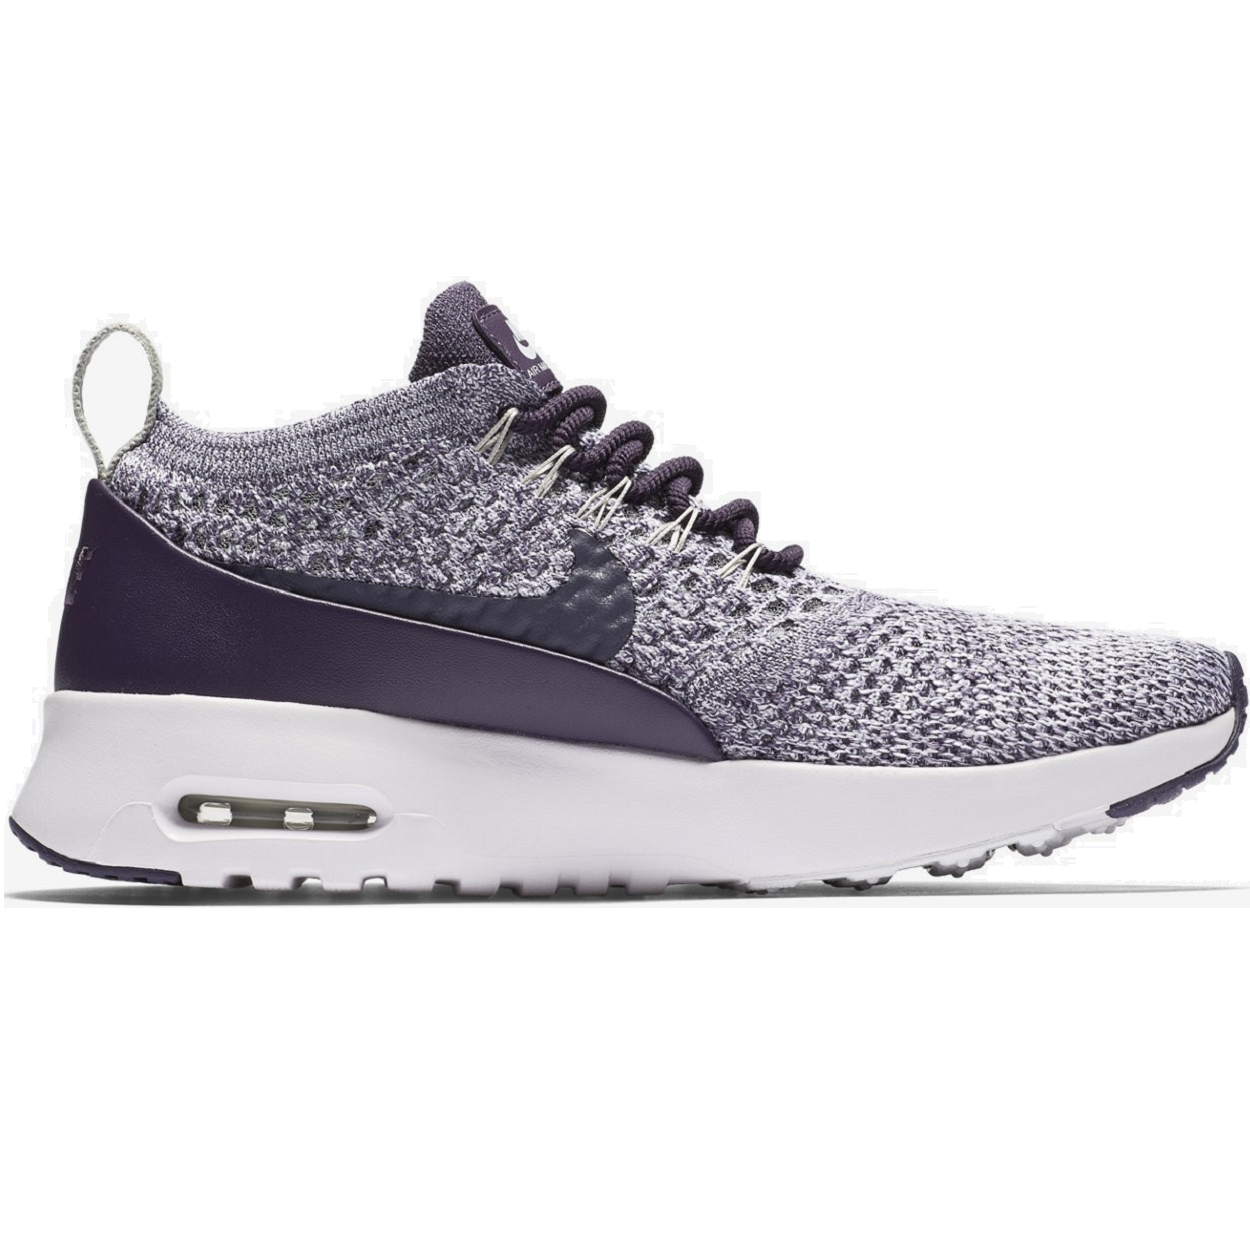 half off f63bf 27afe Nike Air Max Thea Ultra Flyknit FK Sneaker Sport Shoes purple white